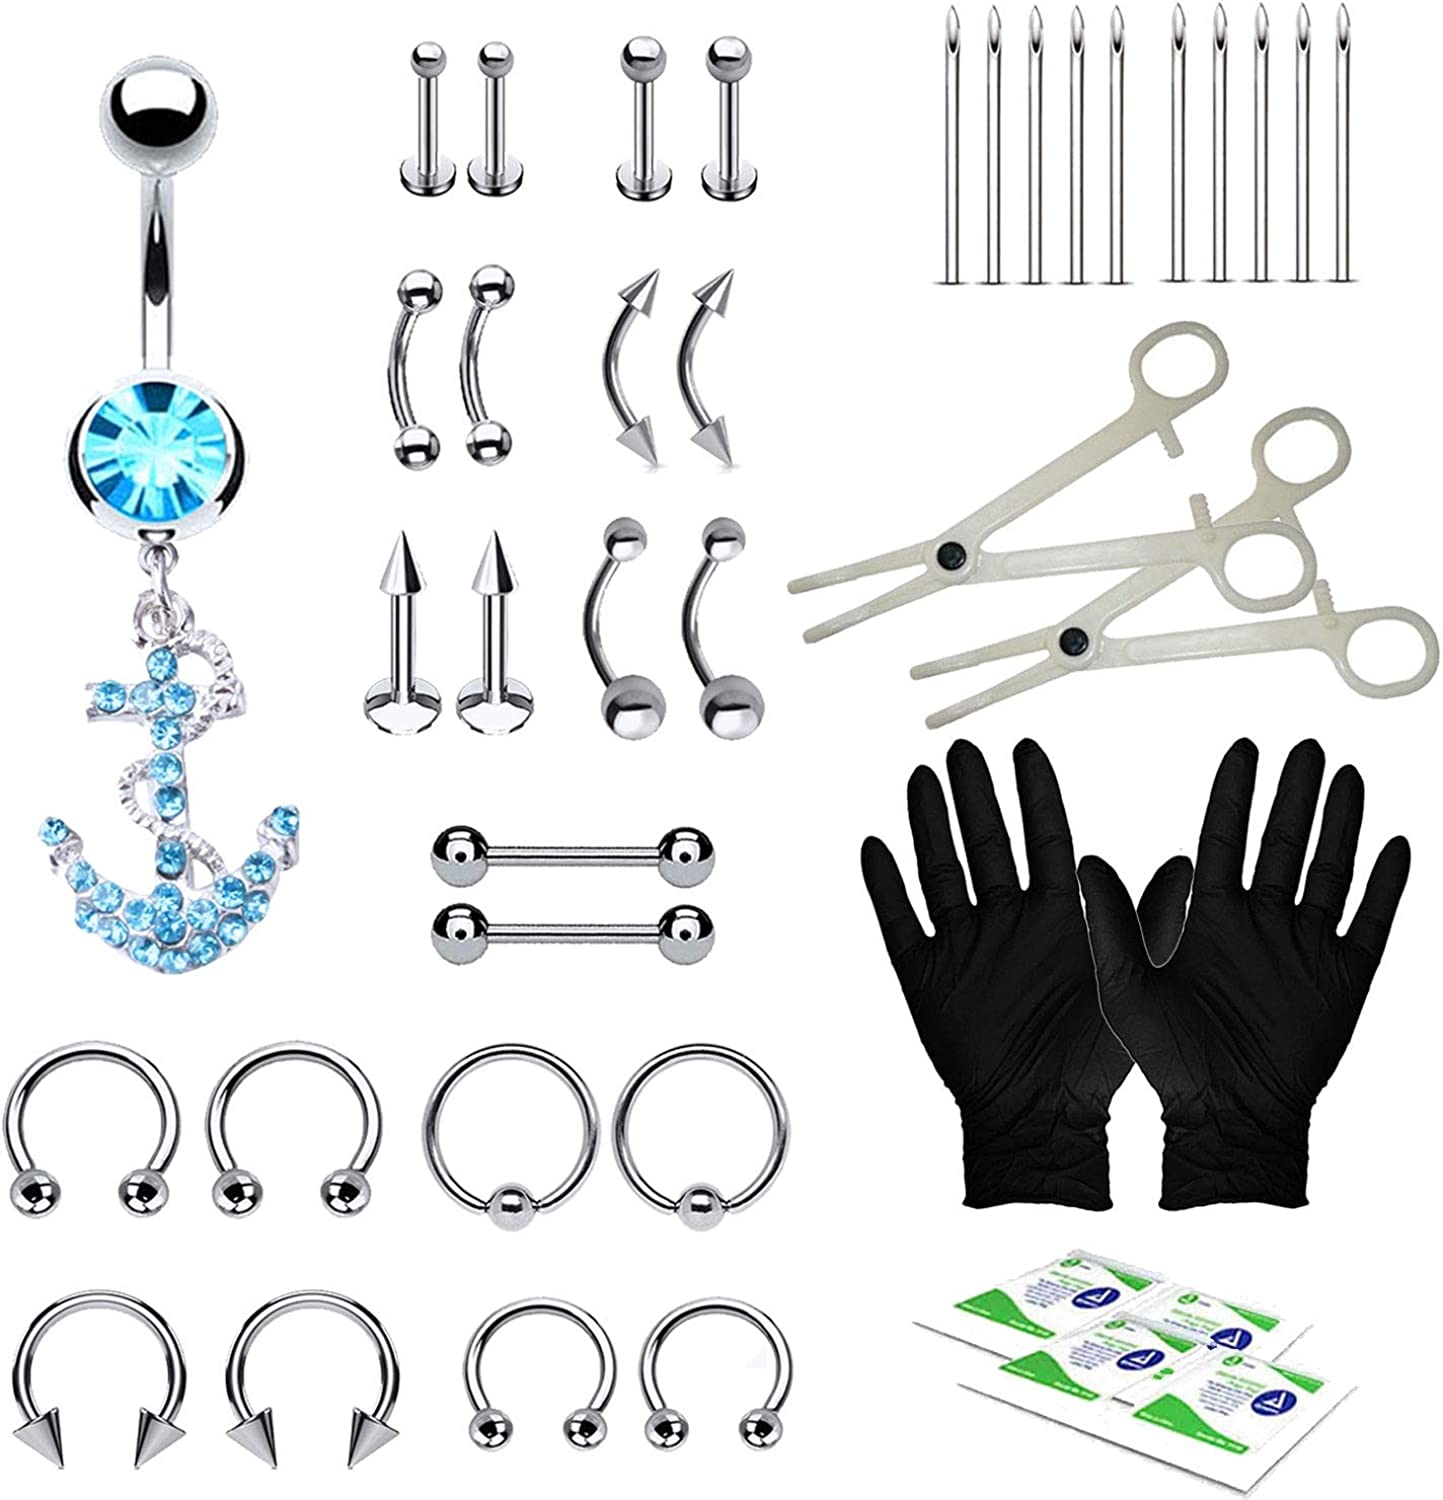 BodyJ4You 36PC PRO Piercing Kit Steel Max 58% OFF 14G Tongue Belly Ring 16G 100% quality warranty